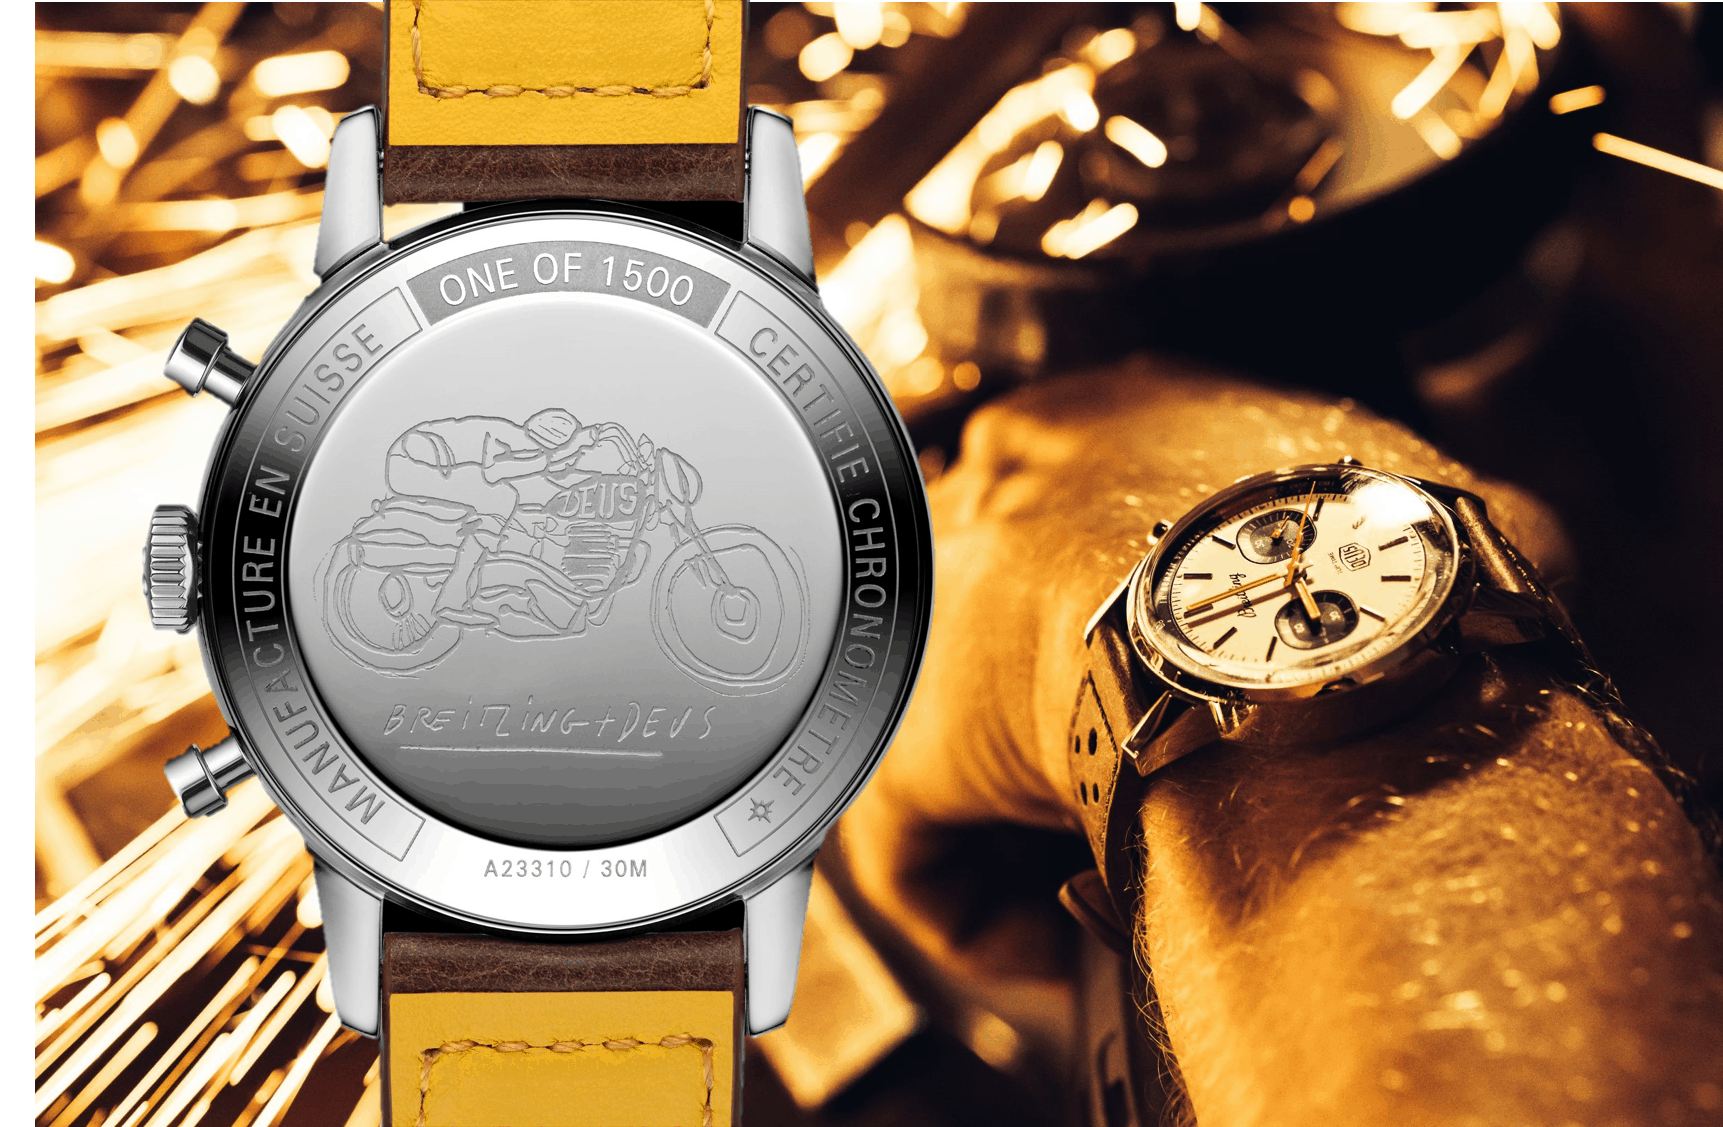 Breitling Top Time Deus Limited Edition Chronograph